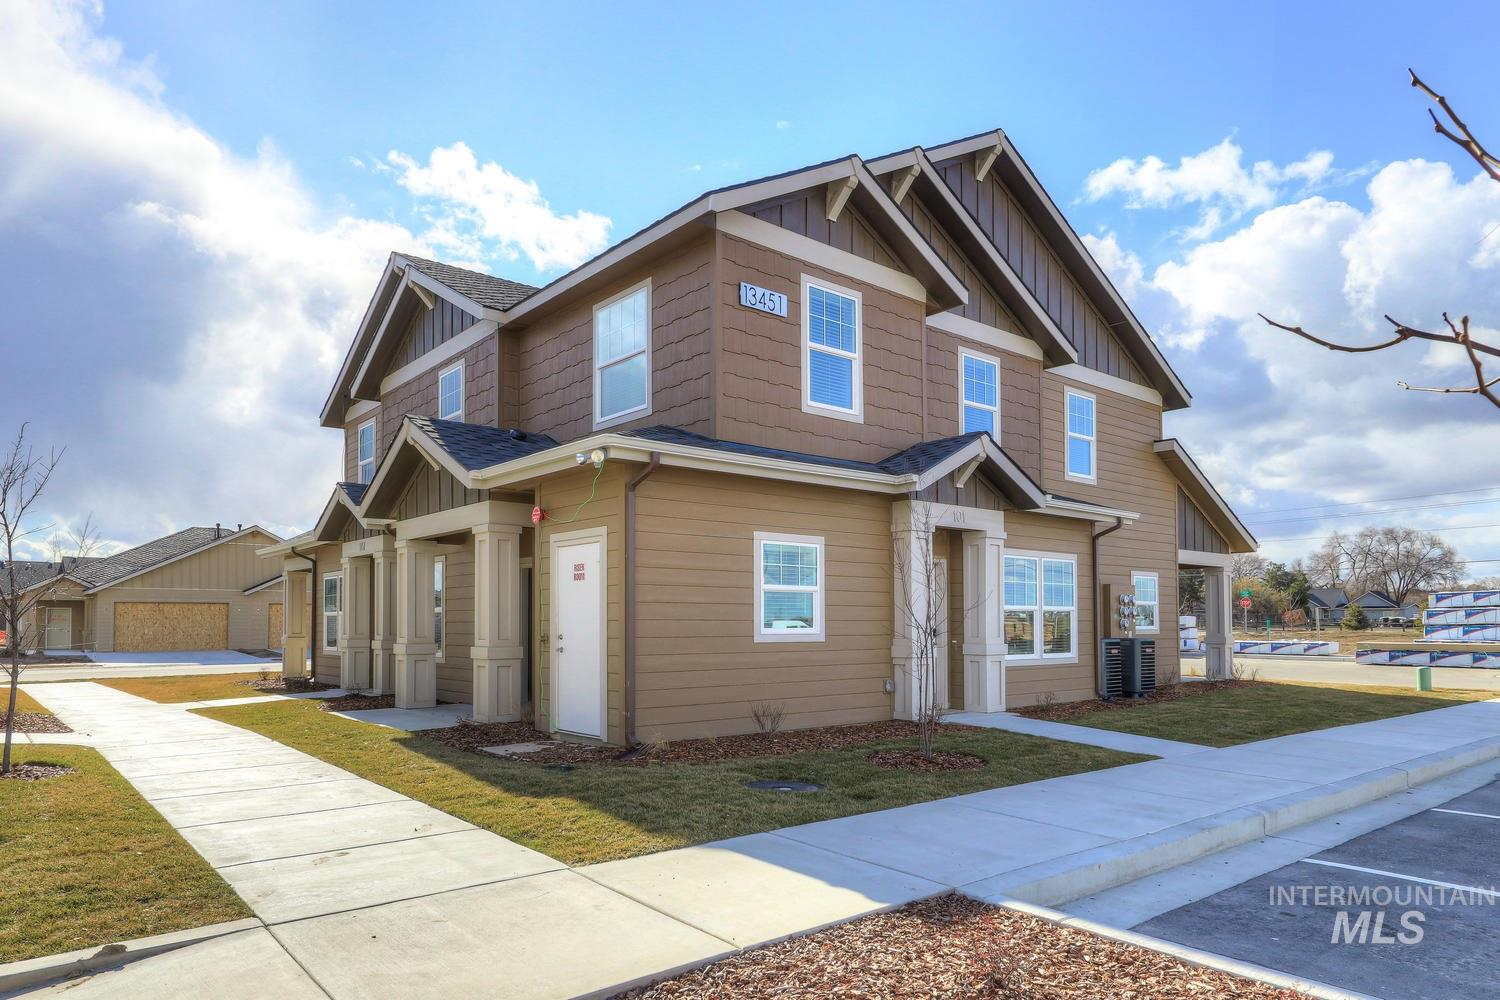 13449 Cedar Hollow Lane, Caldwell, Idaho 83607, 3 Bedrooms, 2.5 Bathrooms, Rental For Rent, Price $1,425, 98780502